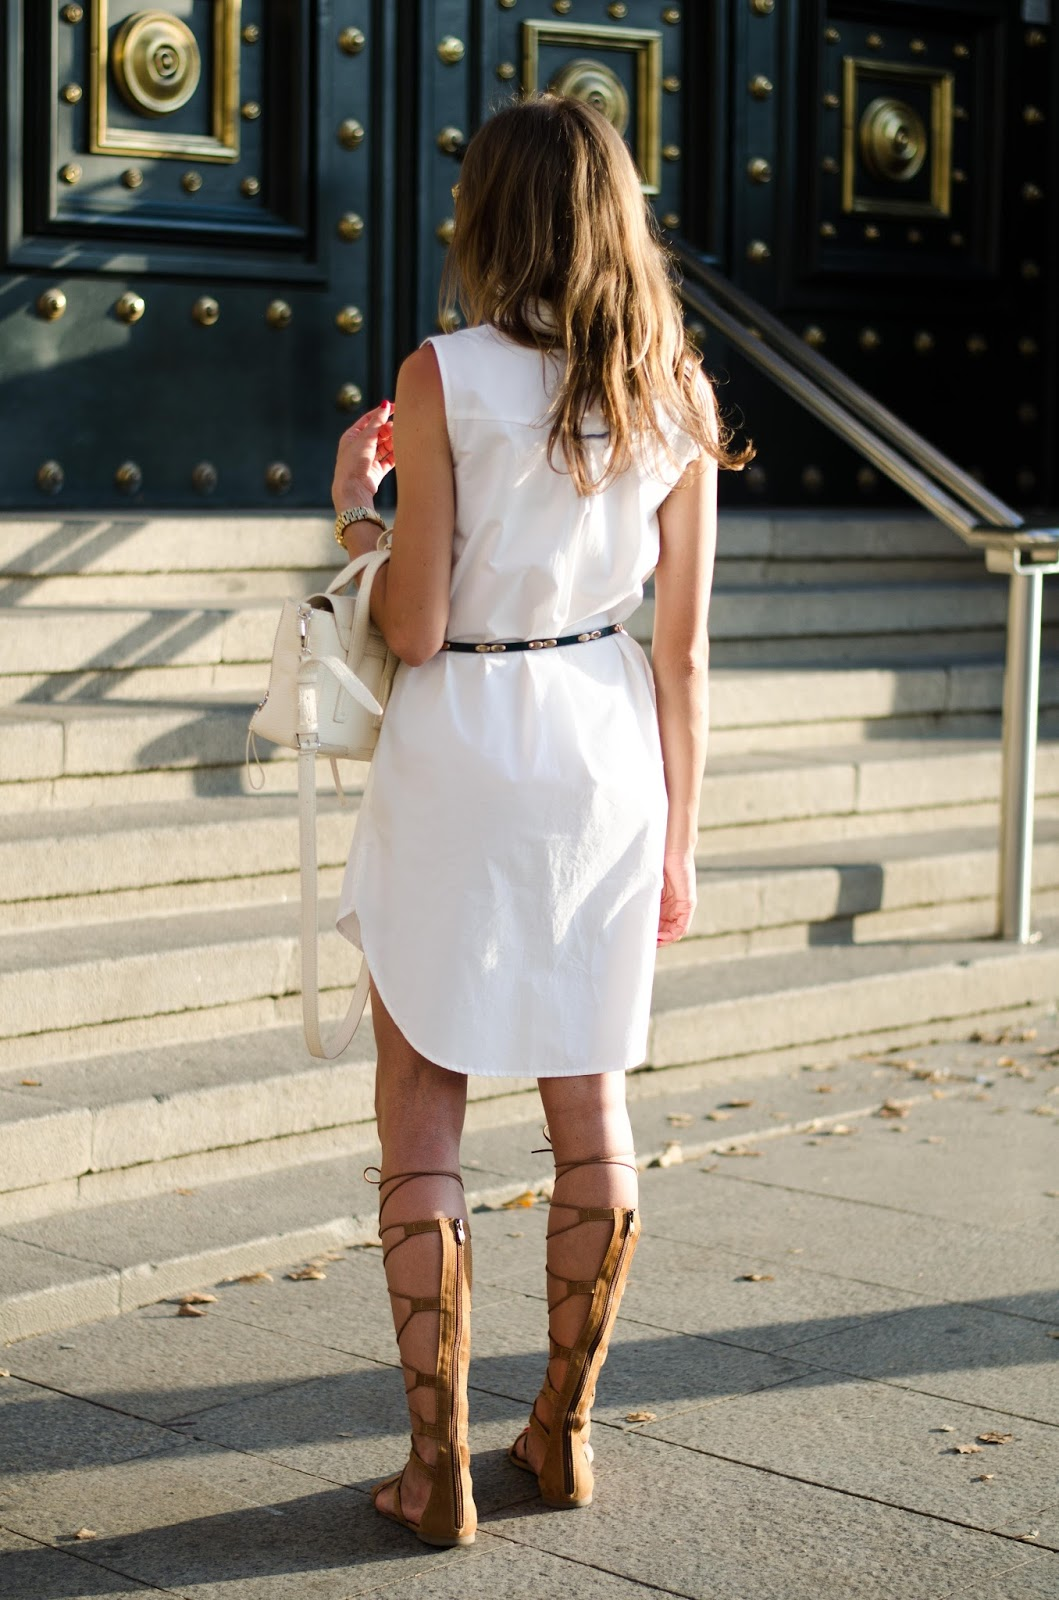 kristjaana mere zara white shirt dress tamaris gladiator sandals